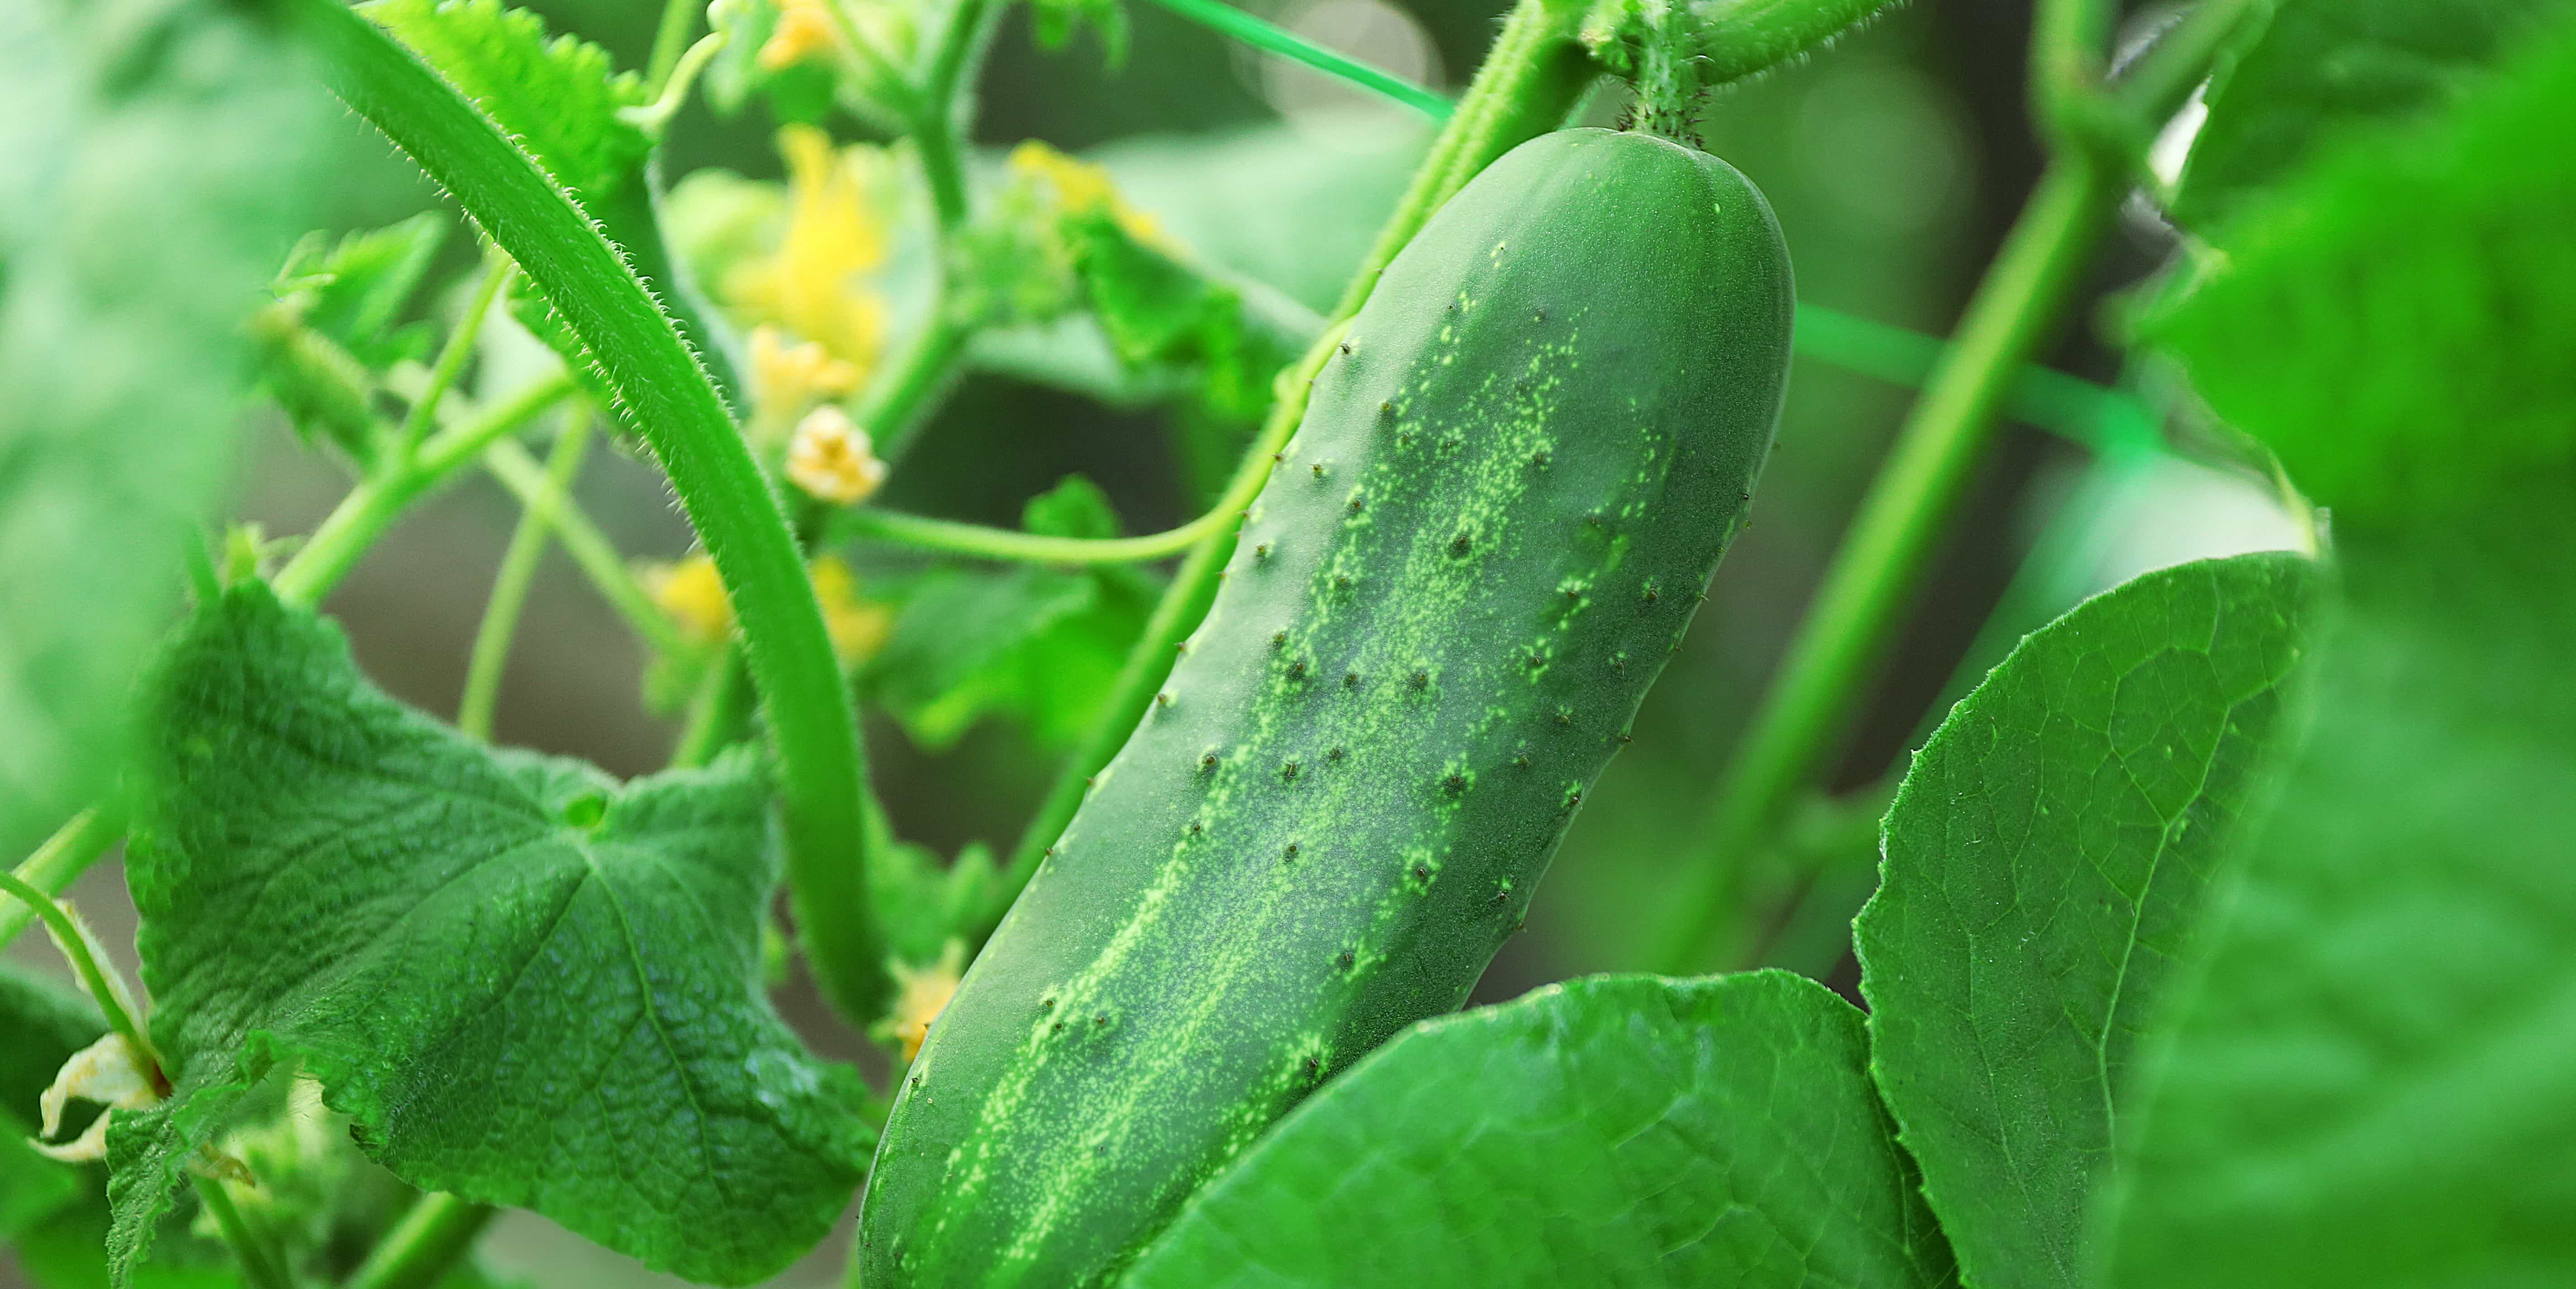 Suitable time to cultivate cucumber